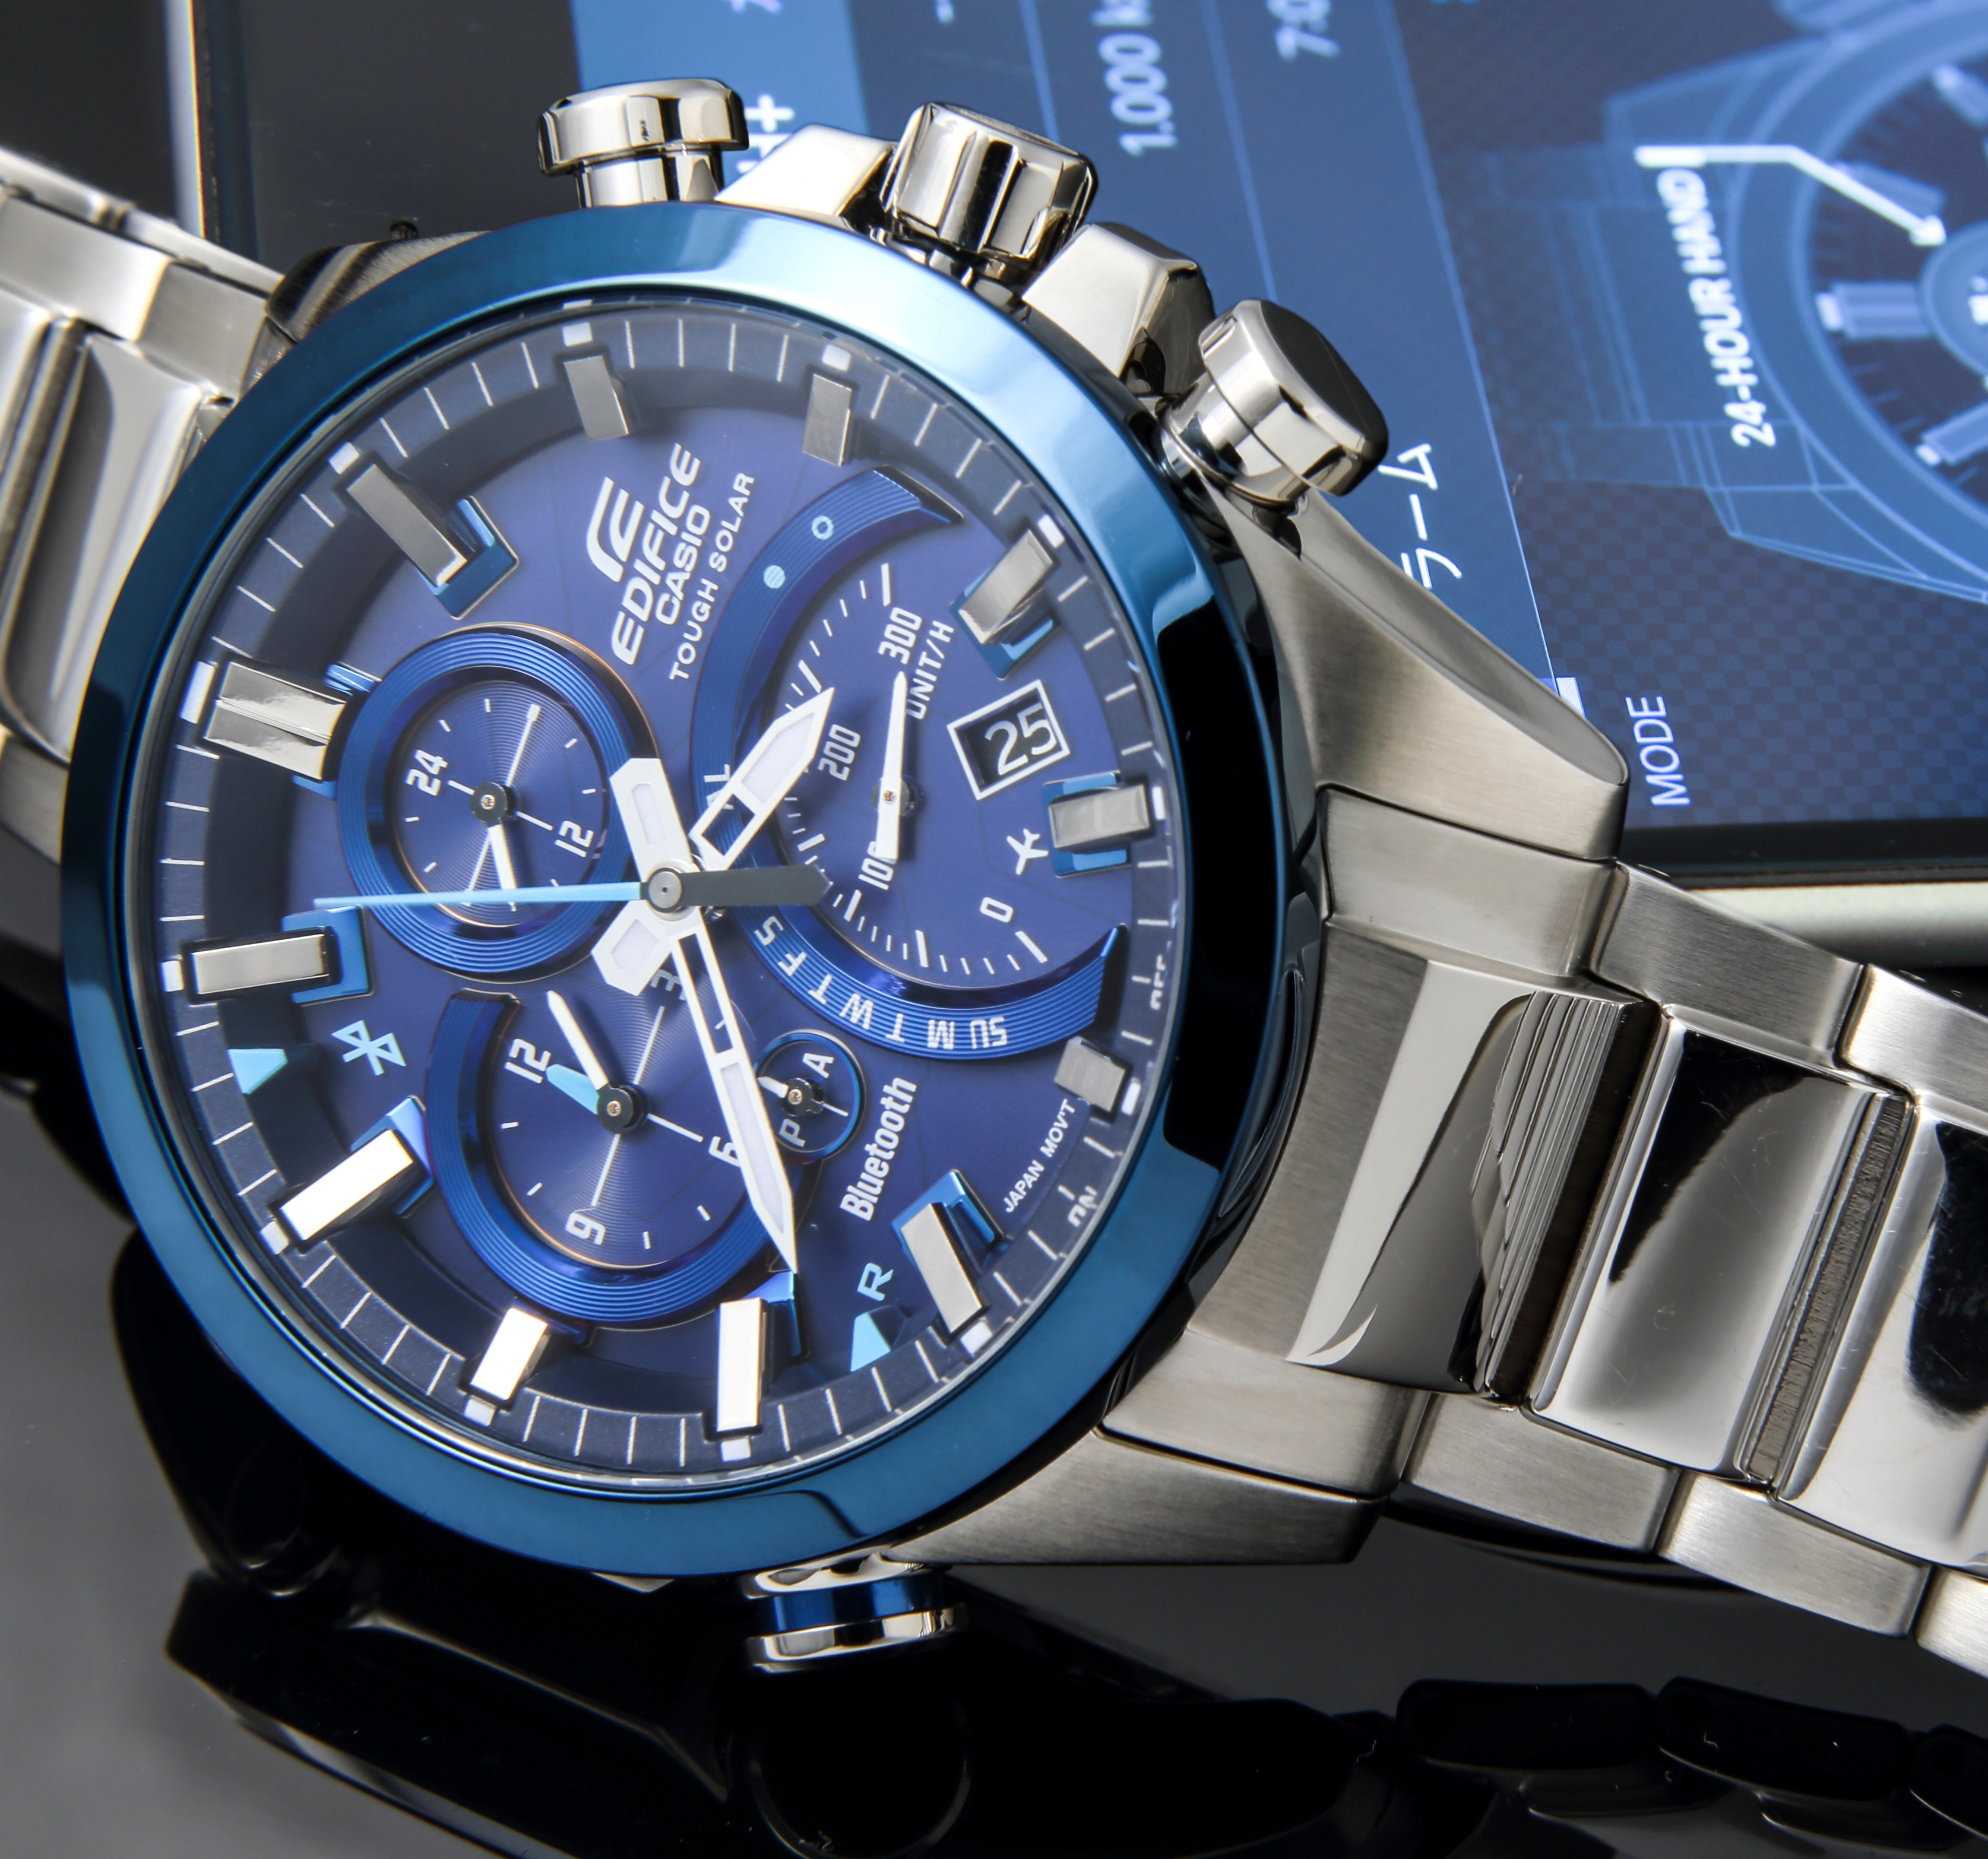 Casio Introduces Latest EDIFICE Timepiece With Smart Phone Link